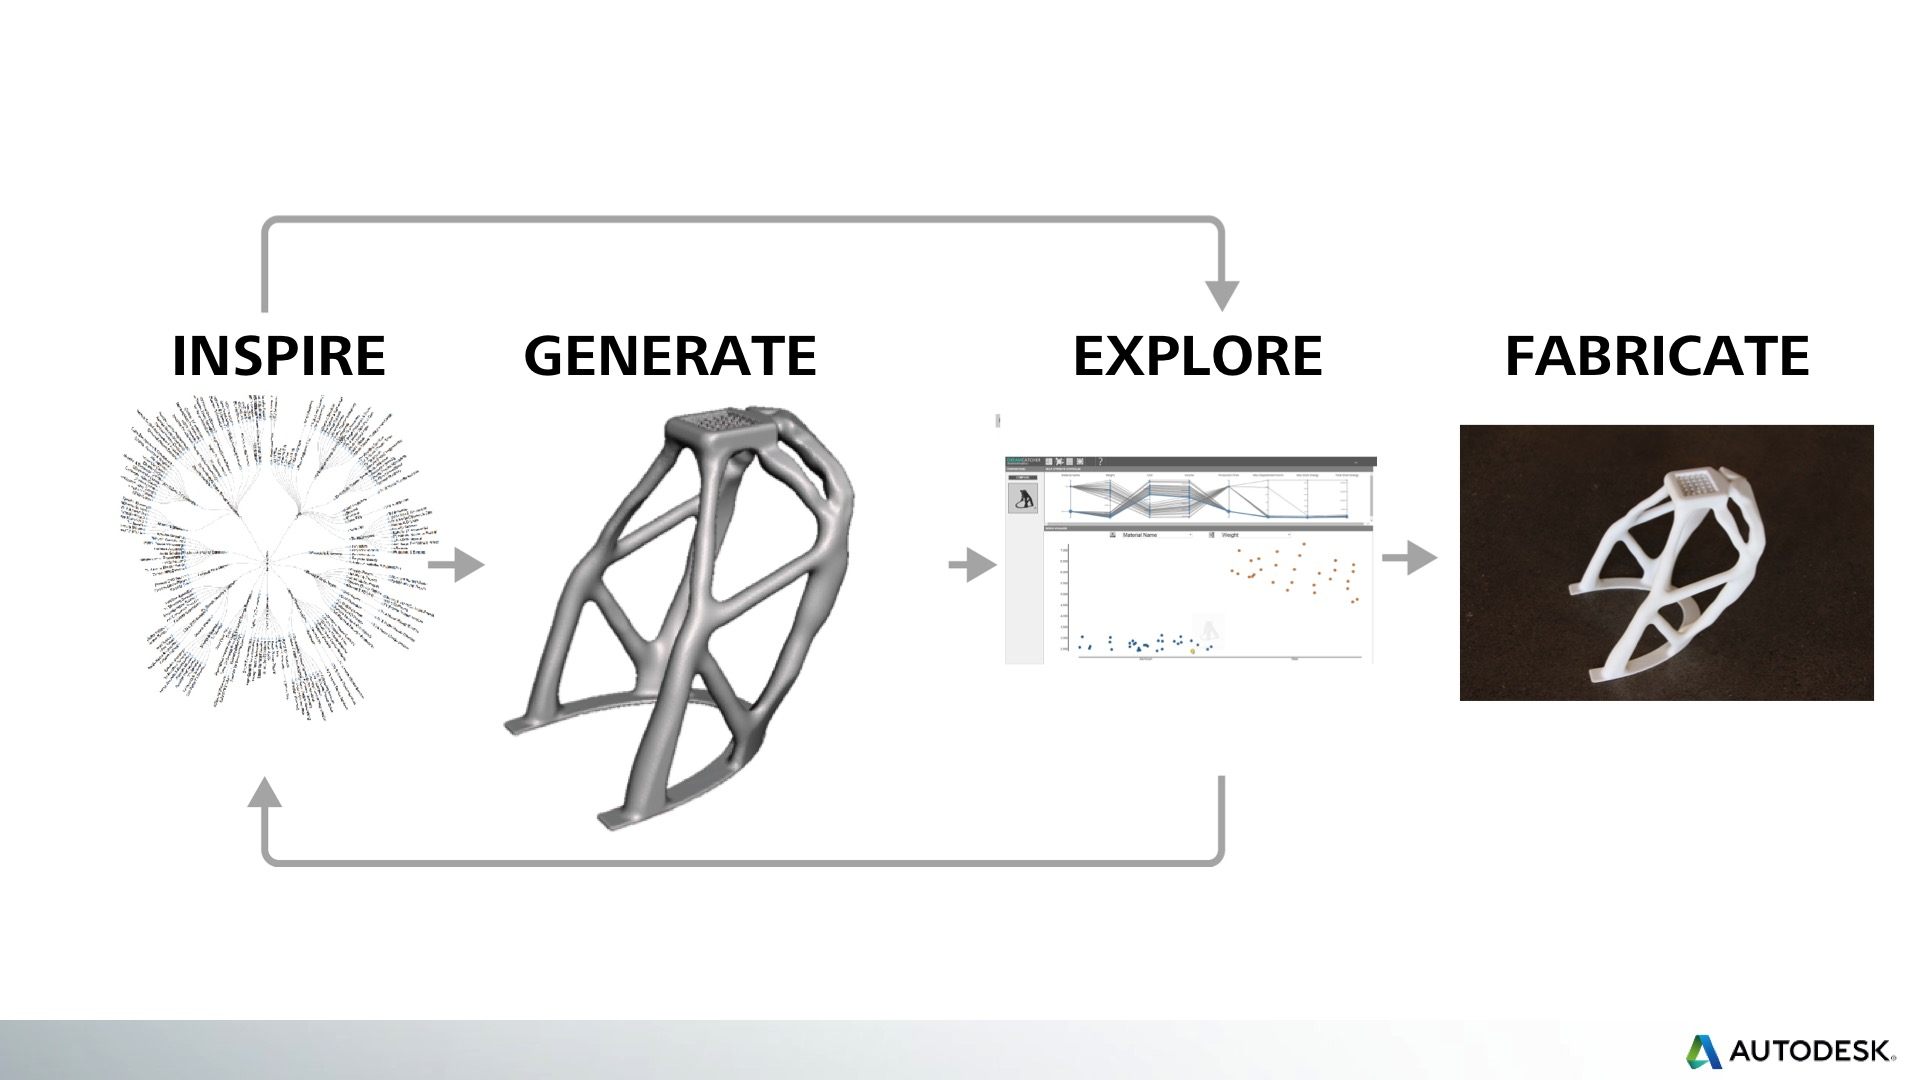 Autodesk - Generative Design